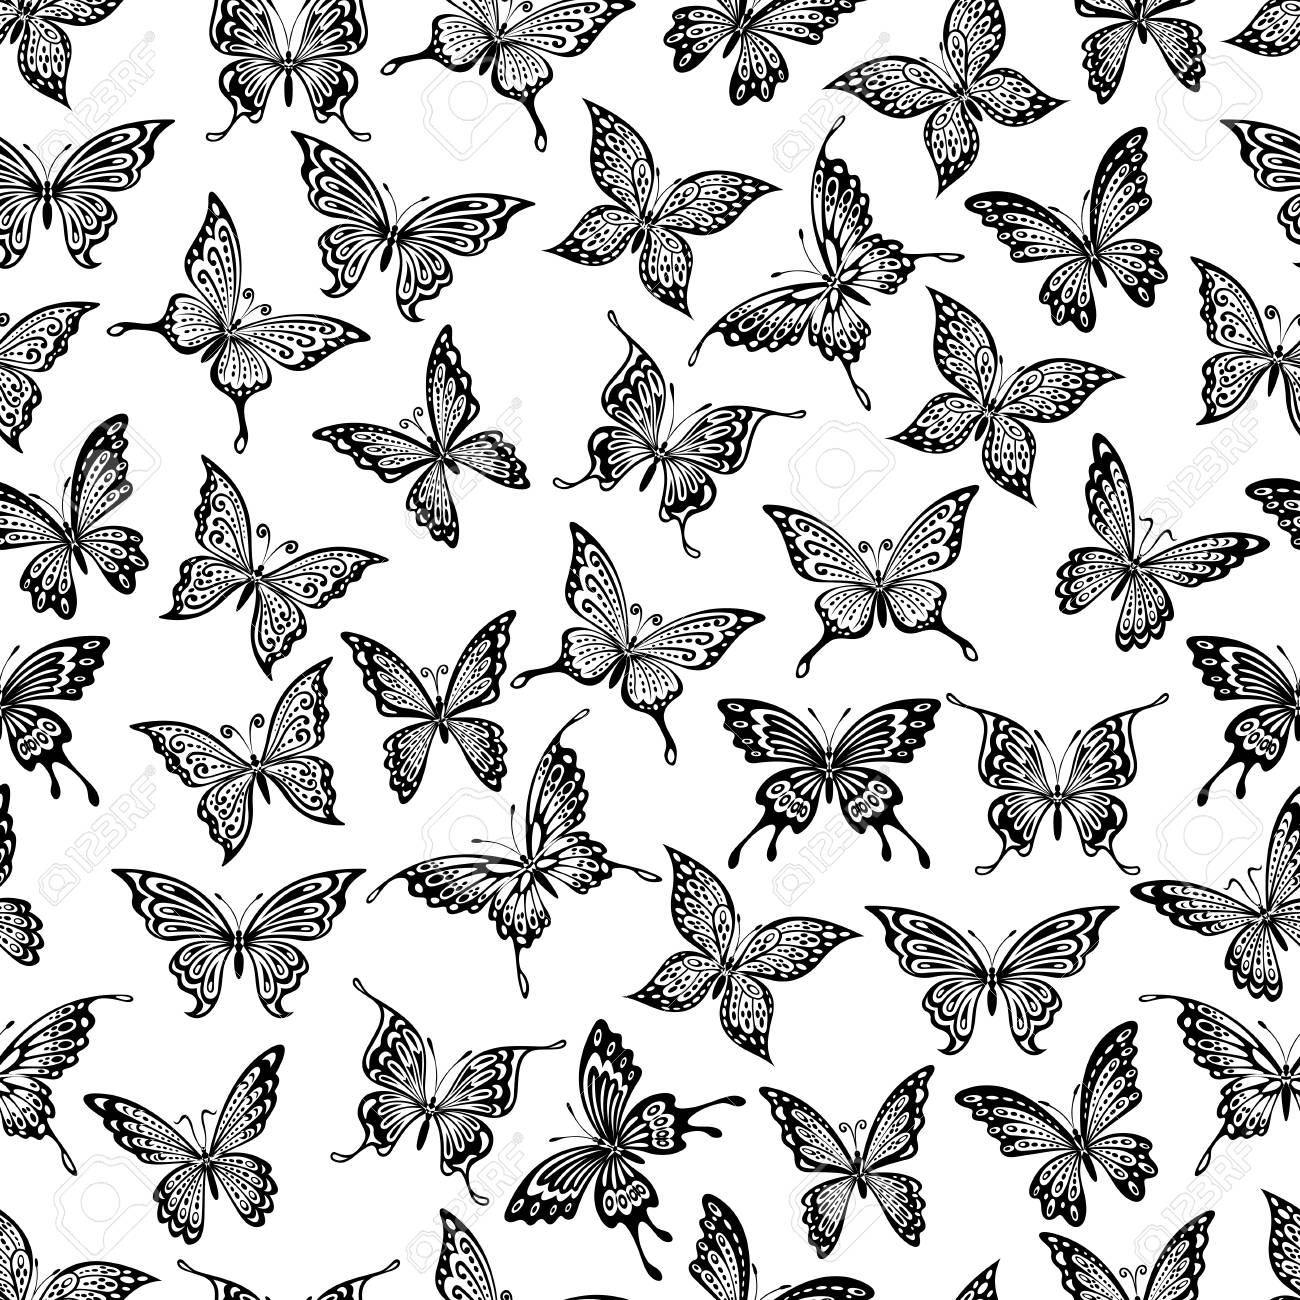 Seamless Pattern With Black Flying Butterflies On White Background For Wallpaper Or Textile Design Stock